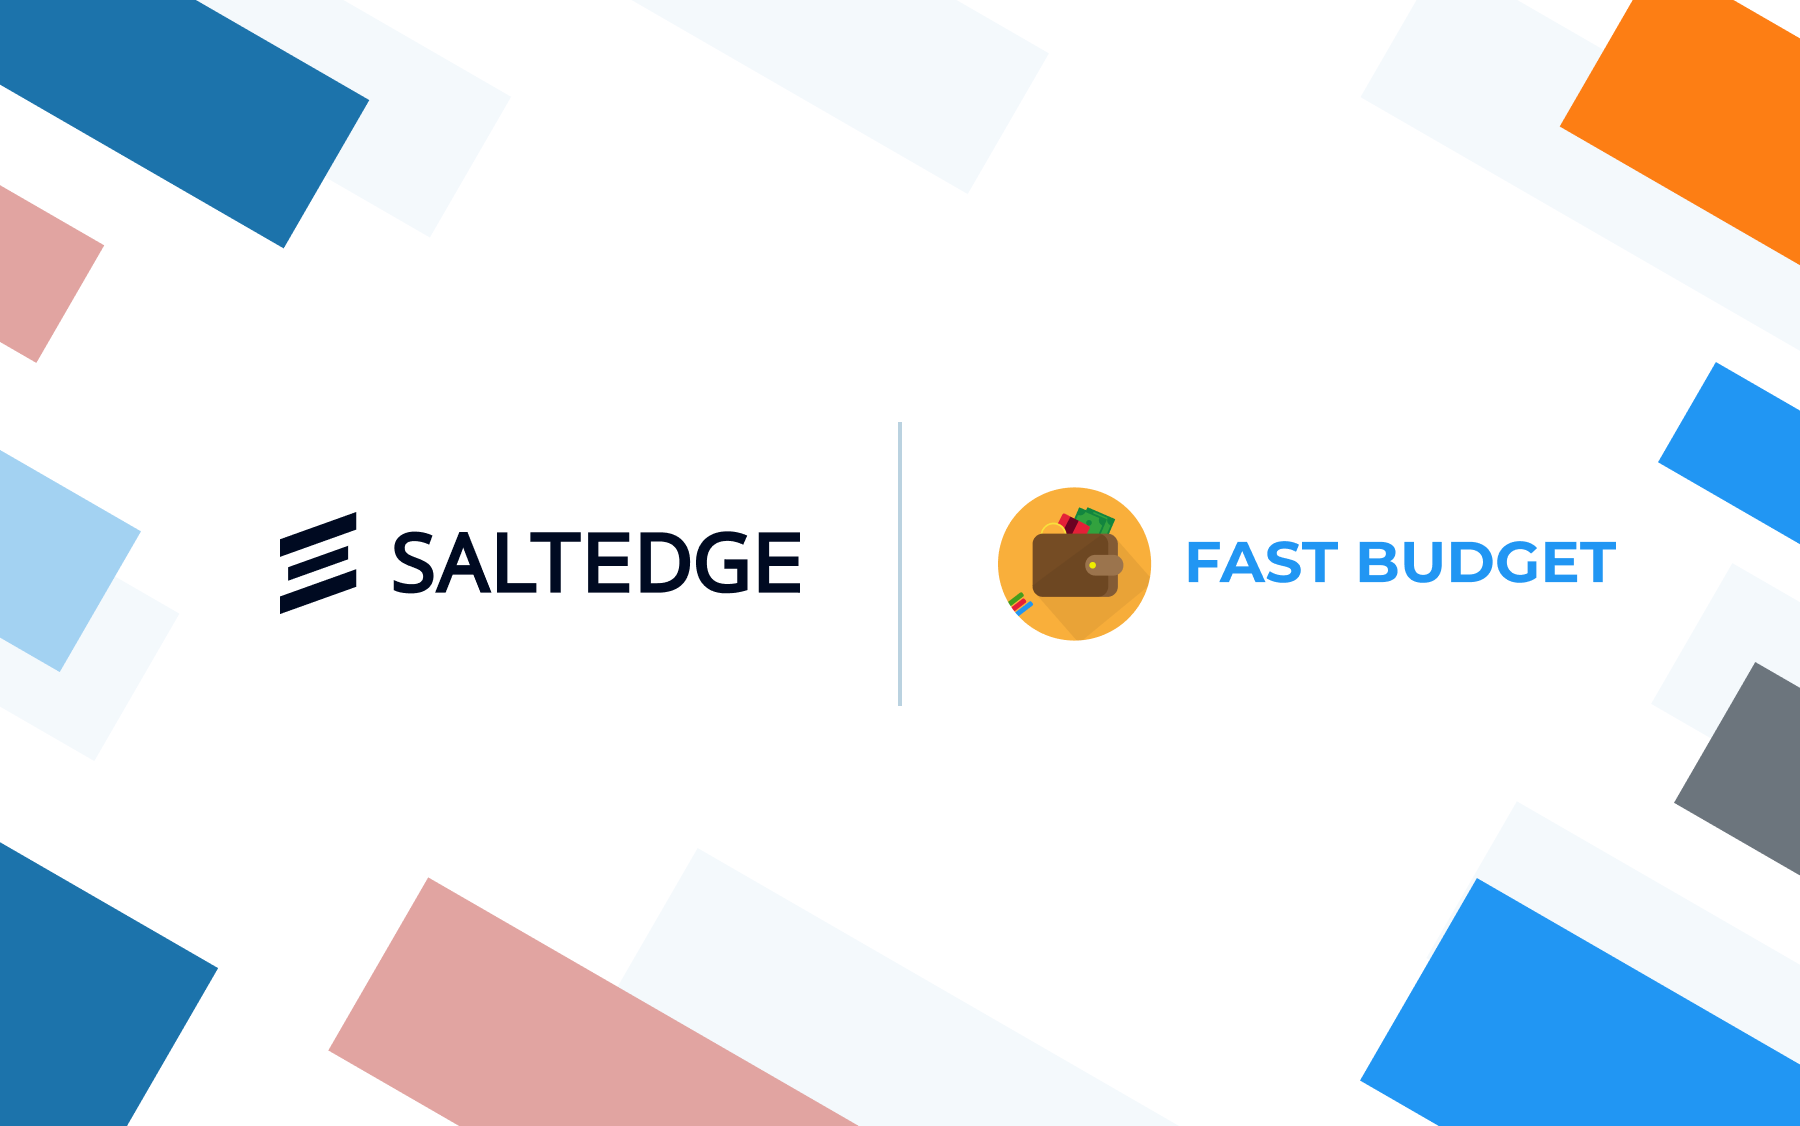 Fast Budget and Salt Edge to Provide a Fully Automated Way to Manage Daily Finances